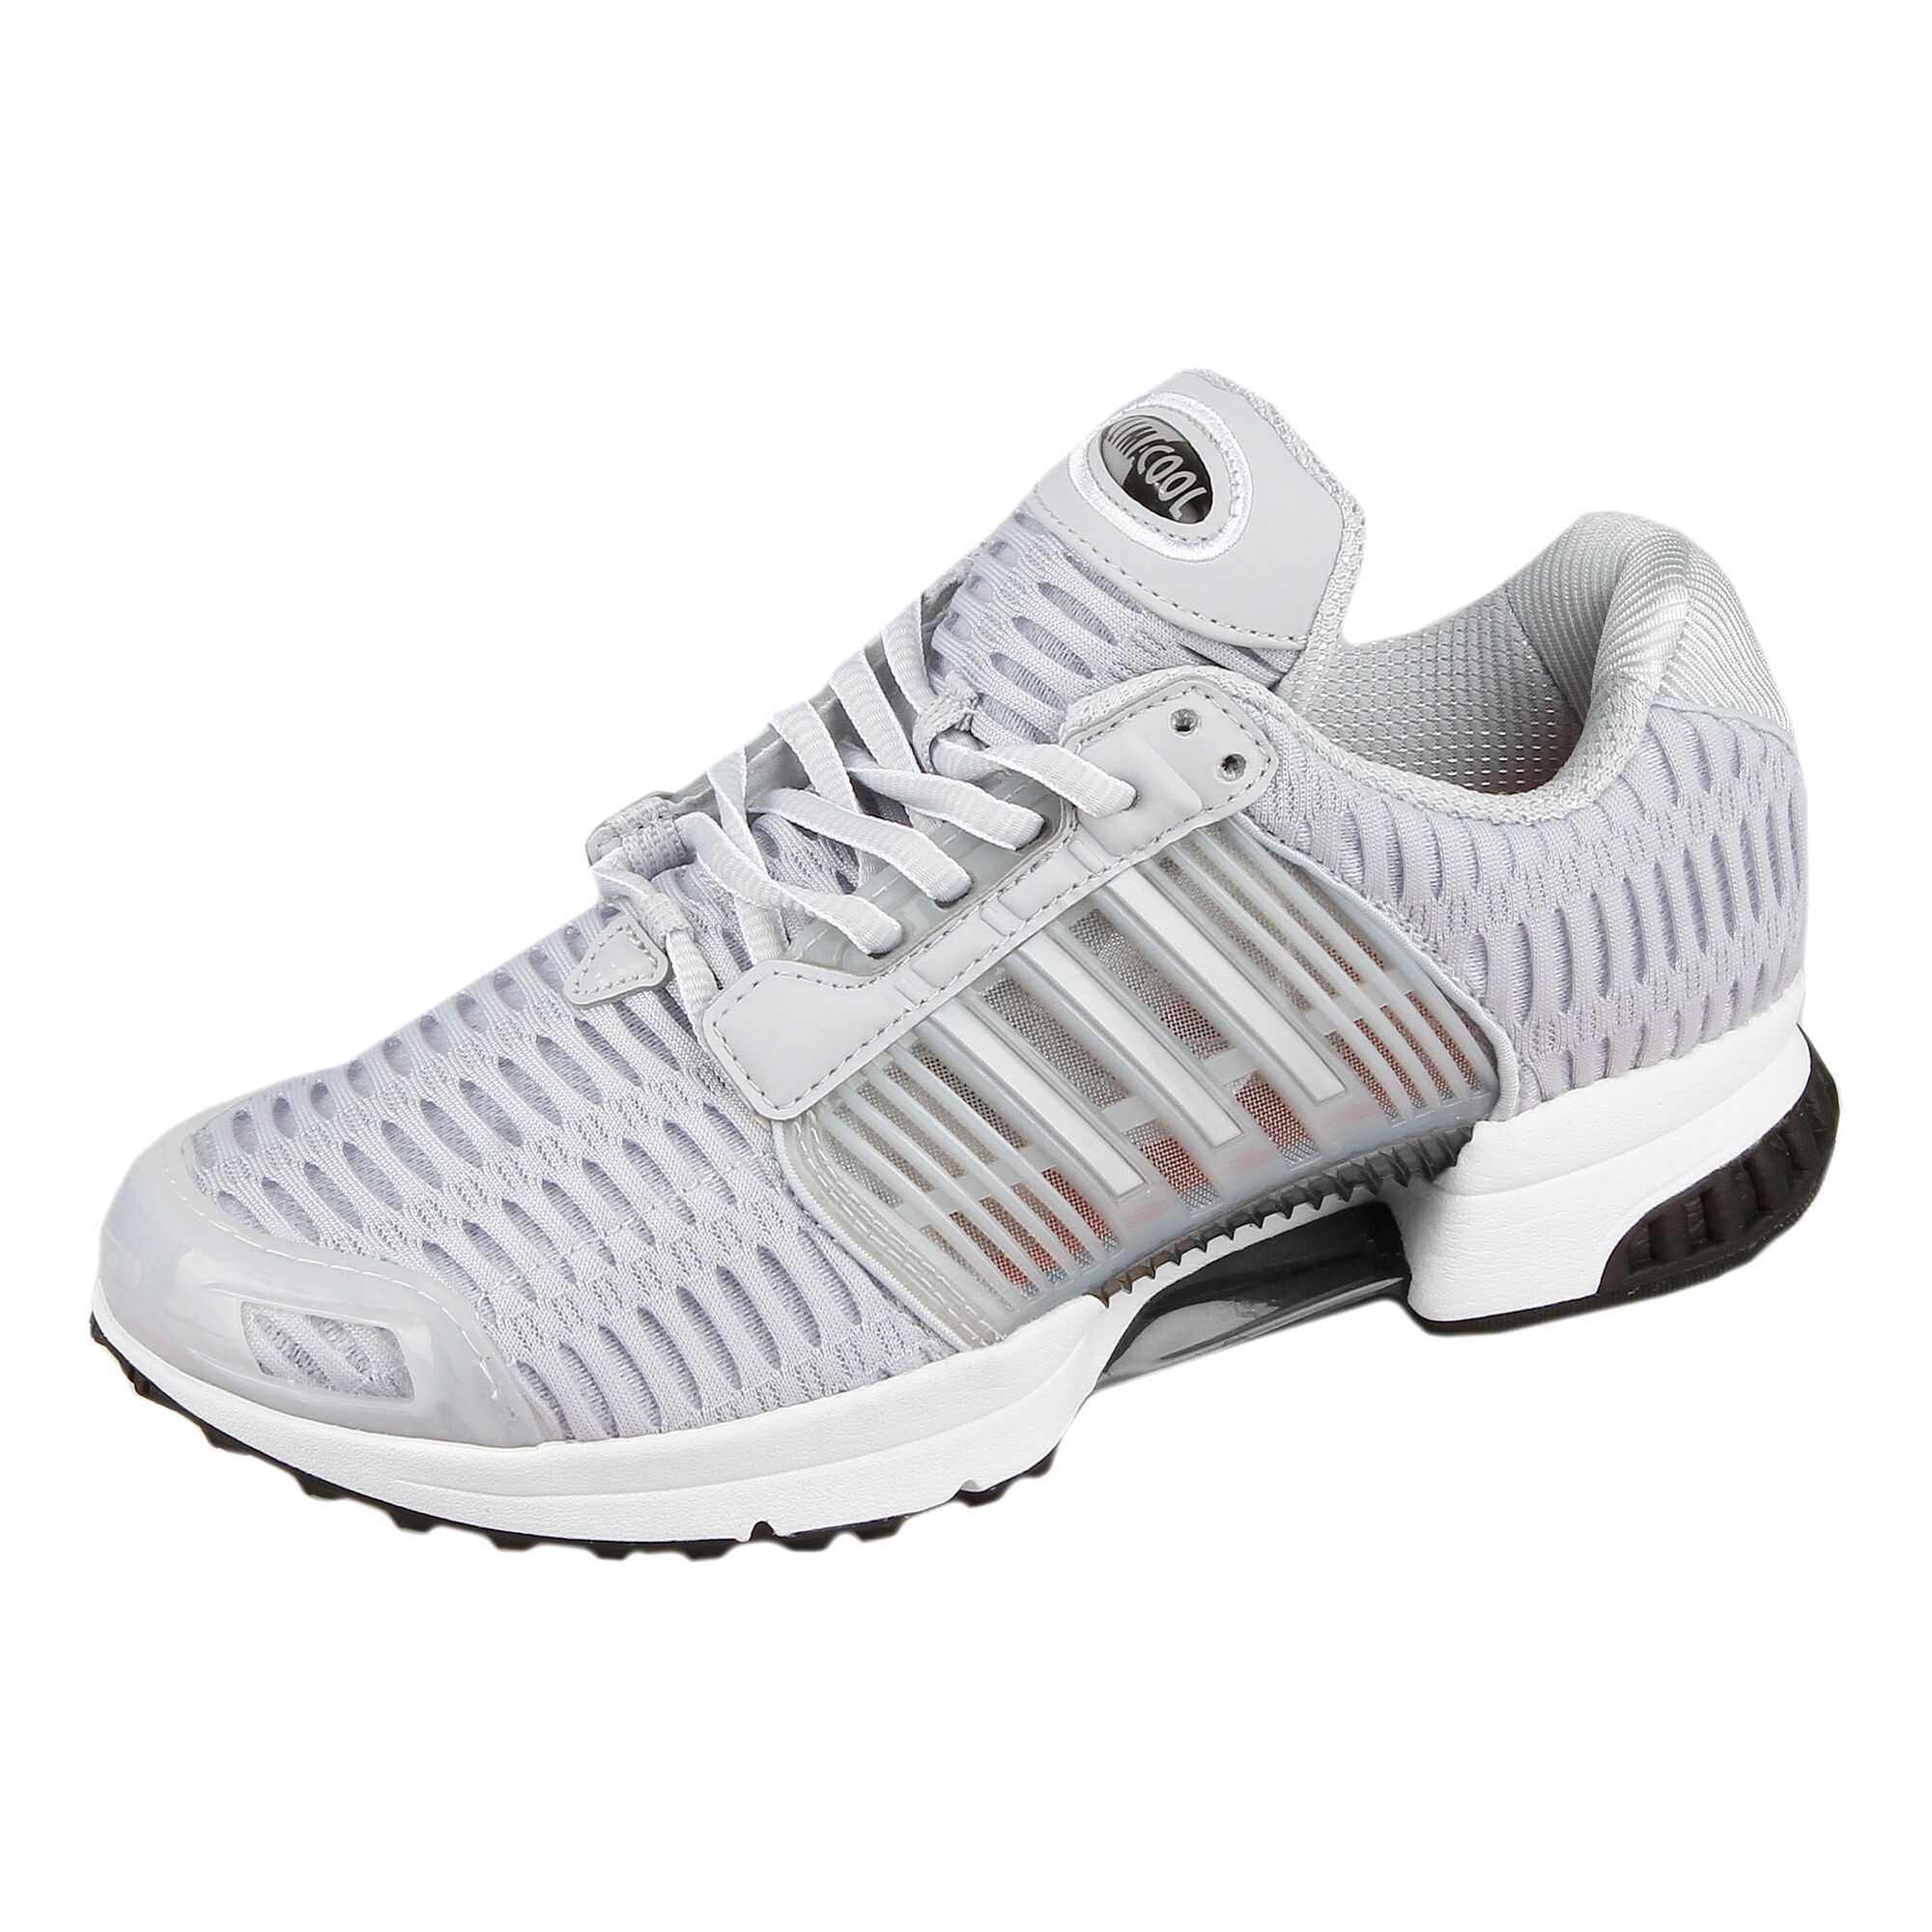 premium selection 303df 7600c adidas Climacool 1 Neutral Running Shoe Men - Grey, White